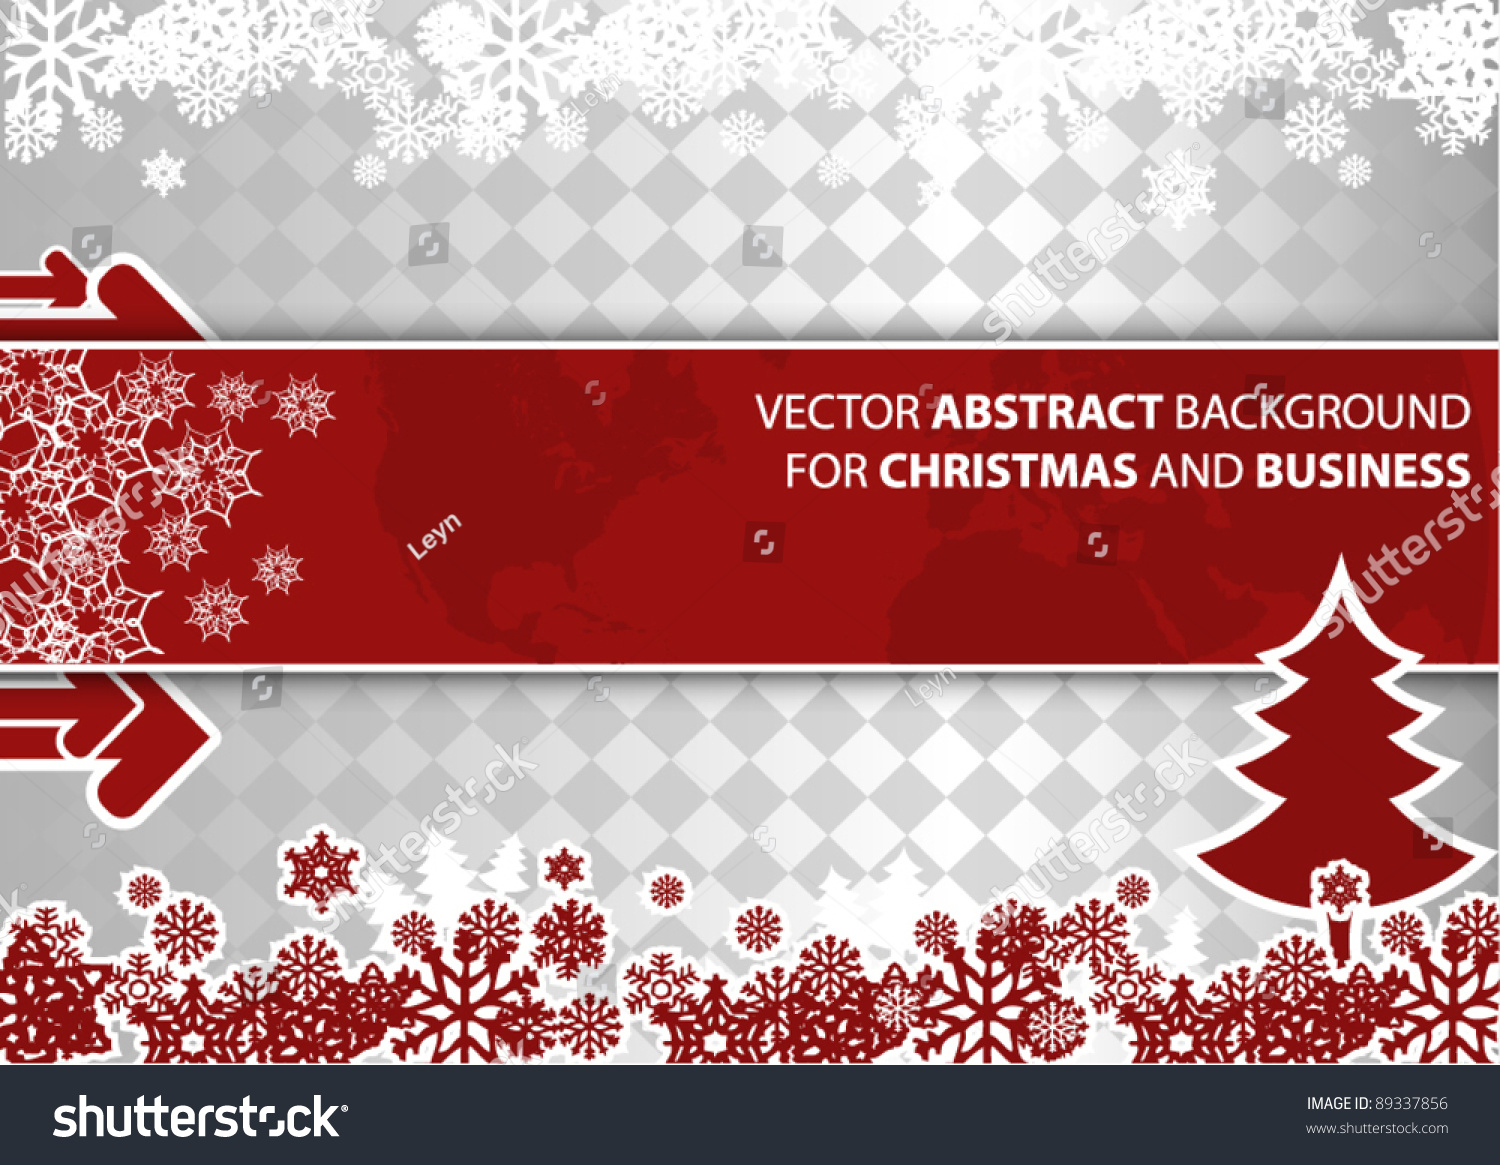 Merry christmas business greeting card 2012 stock vector 89337856 merry christmas business greeting card 2012 kristyandbryce Image collections